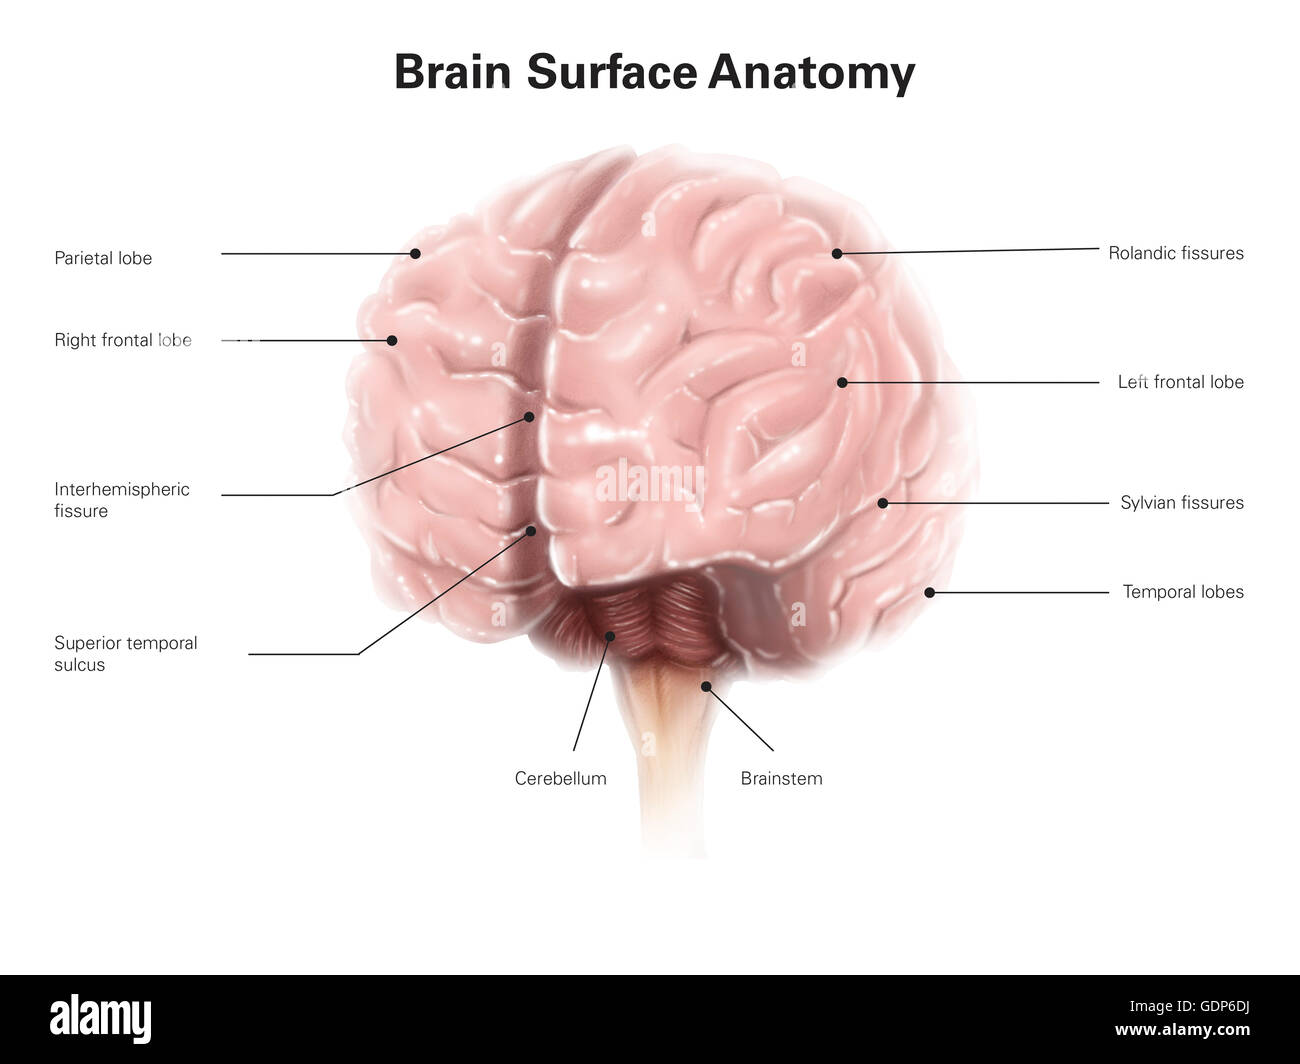 Surface Anatomy Stock Photos & Surface Anatomy Stock Images - Alamy